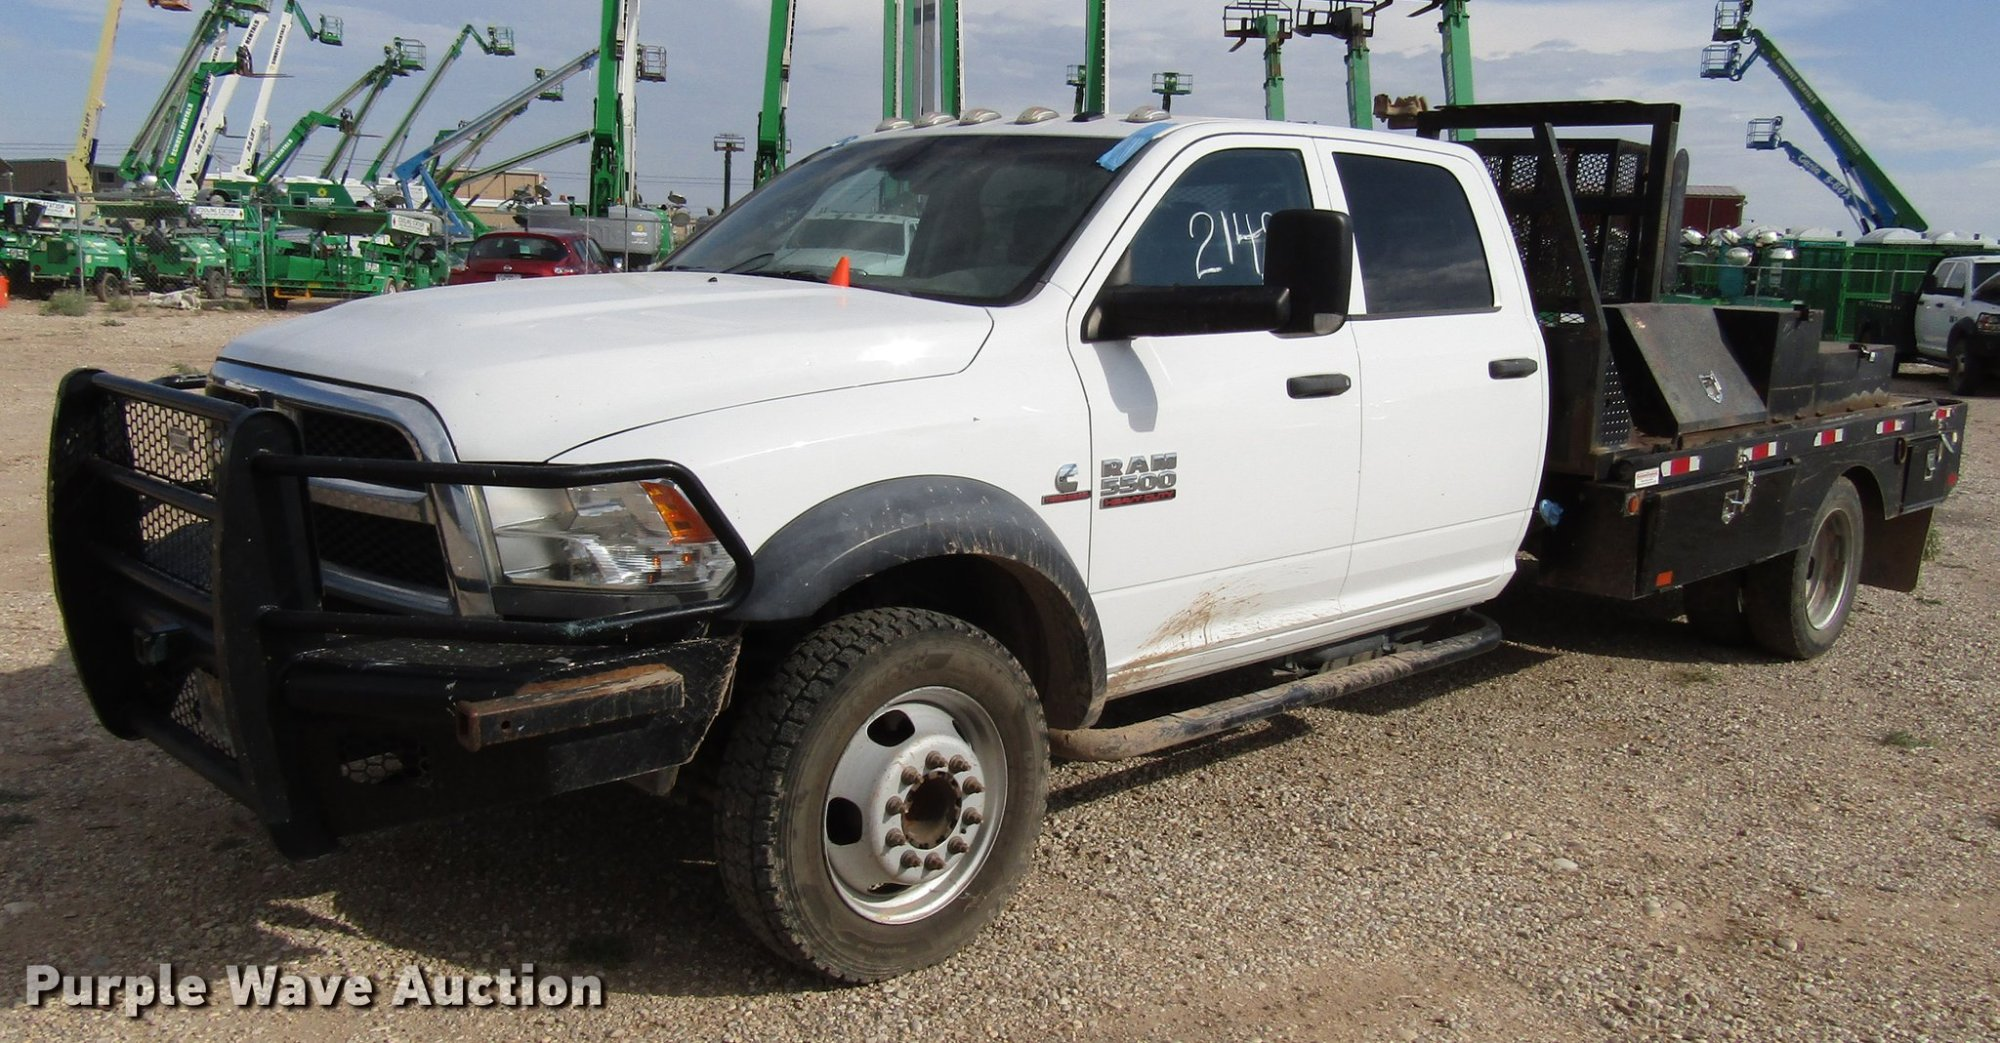 hight resolution of dd4409 image for item dd4409 2014 dodge ram 5500